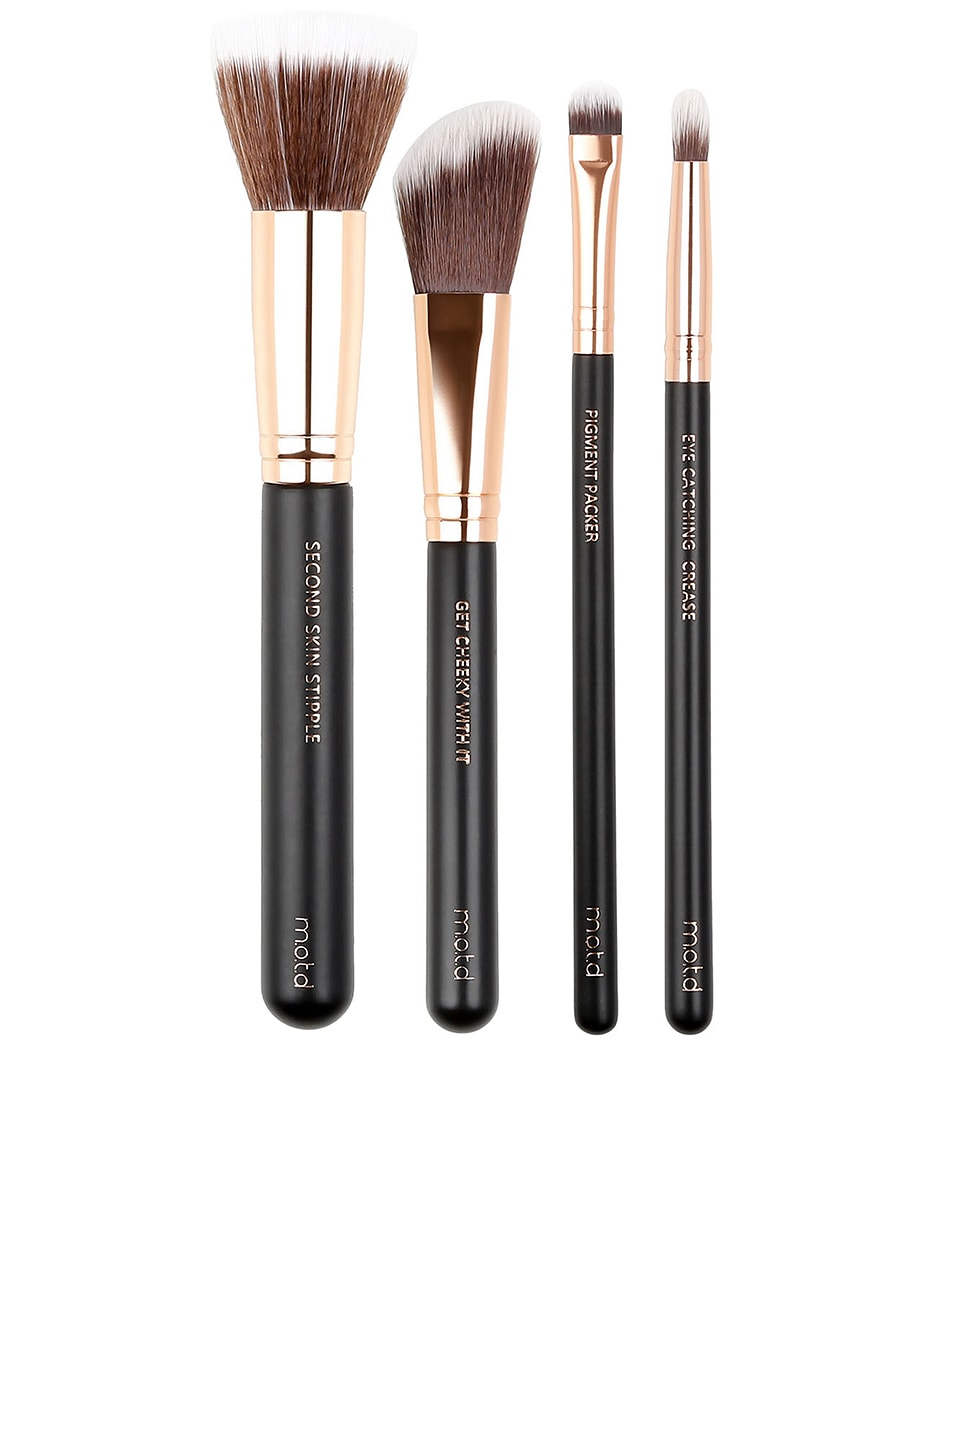 M.O.T.D. COSMETICS WANDERLUST TRAVEL MAKEUP BRUSH SET